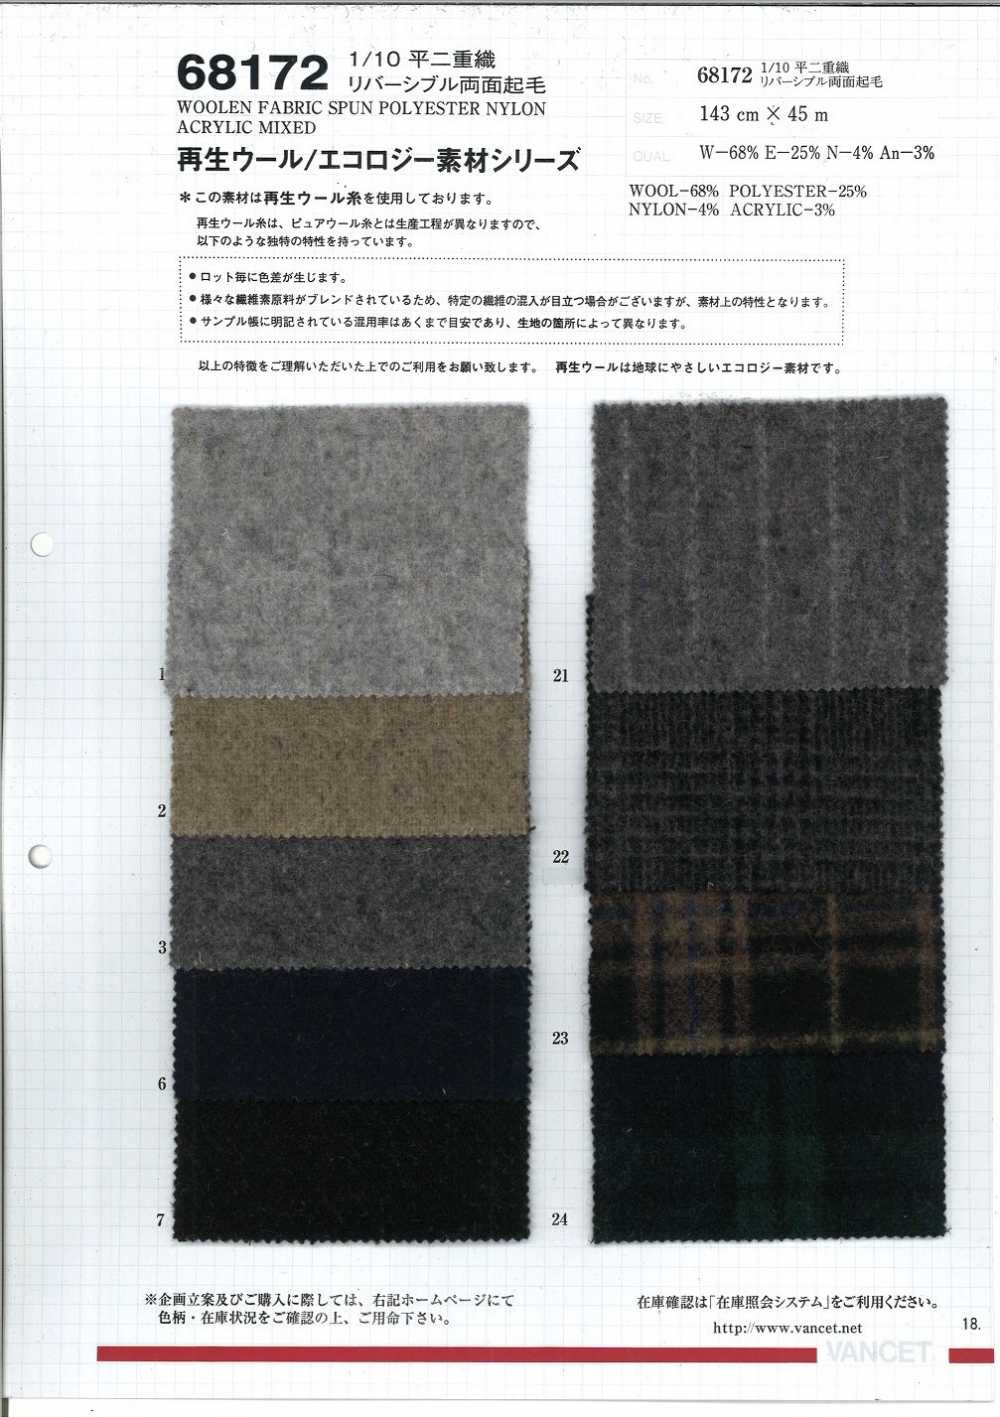 68172 1/10 Flat Double Woven Reversible Double-sided Fuzzy[using Recycled Wool Thread][Textile / Fabric] VANCET